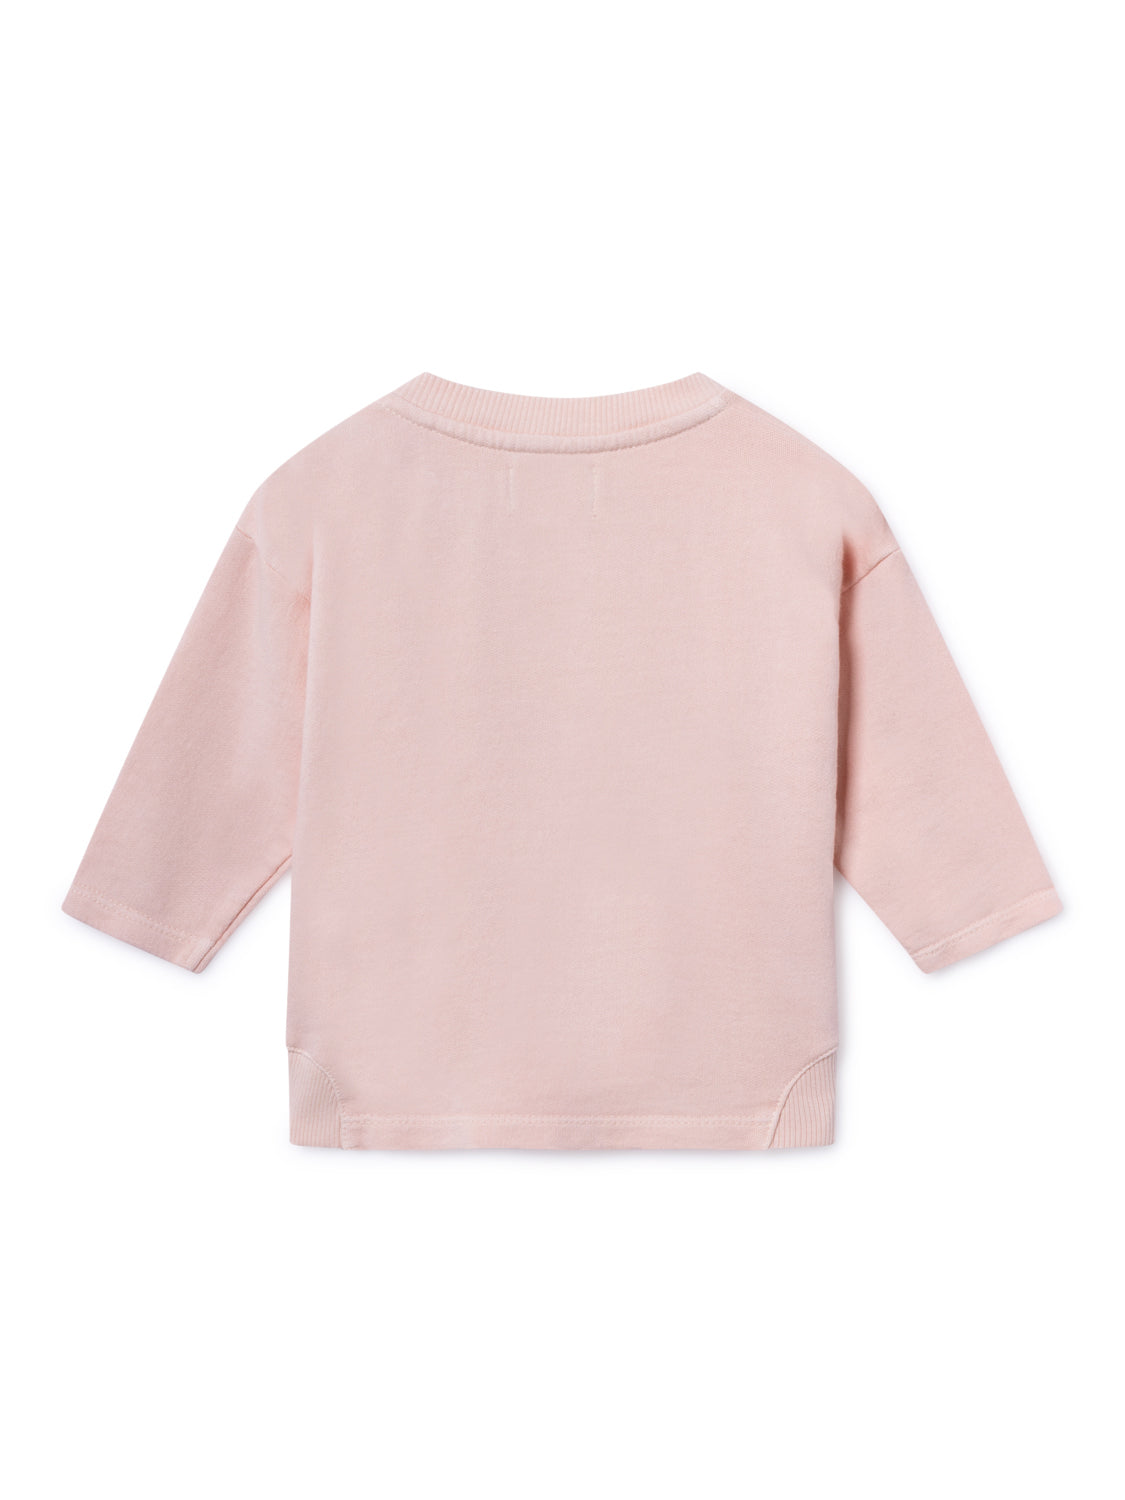 Ant And Apple Round Neck Sweatshirt